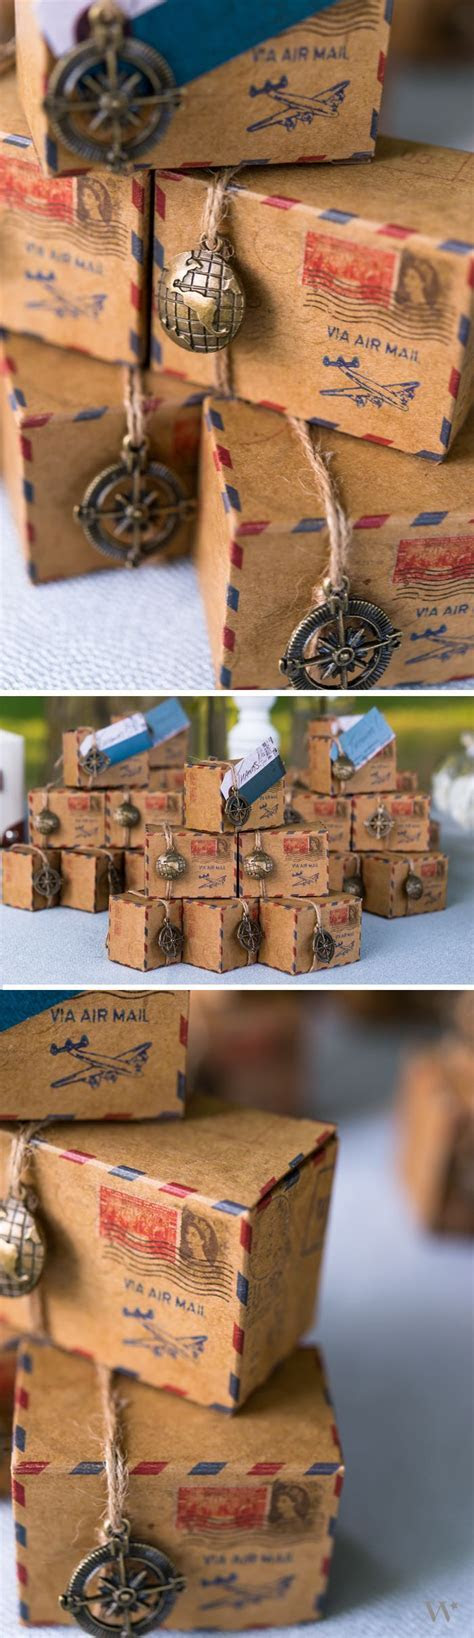 17 Best ideas about Wedding Favor Boxes on Pinterest